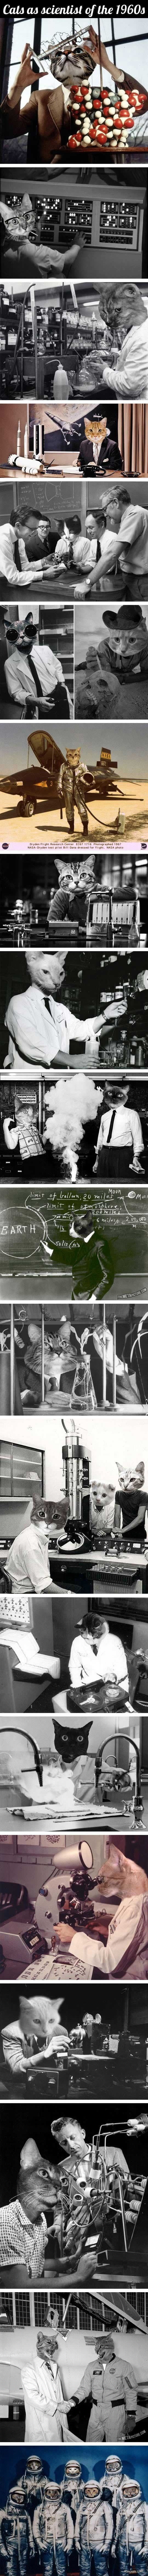 Cats as scientists